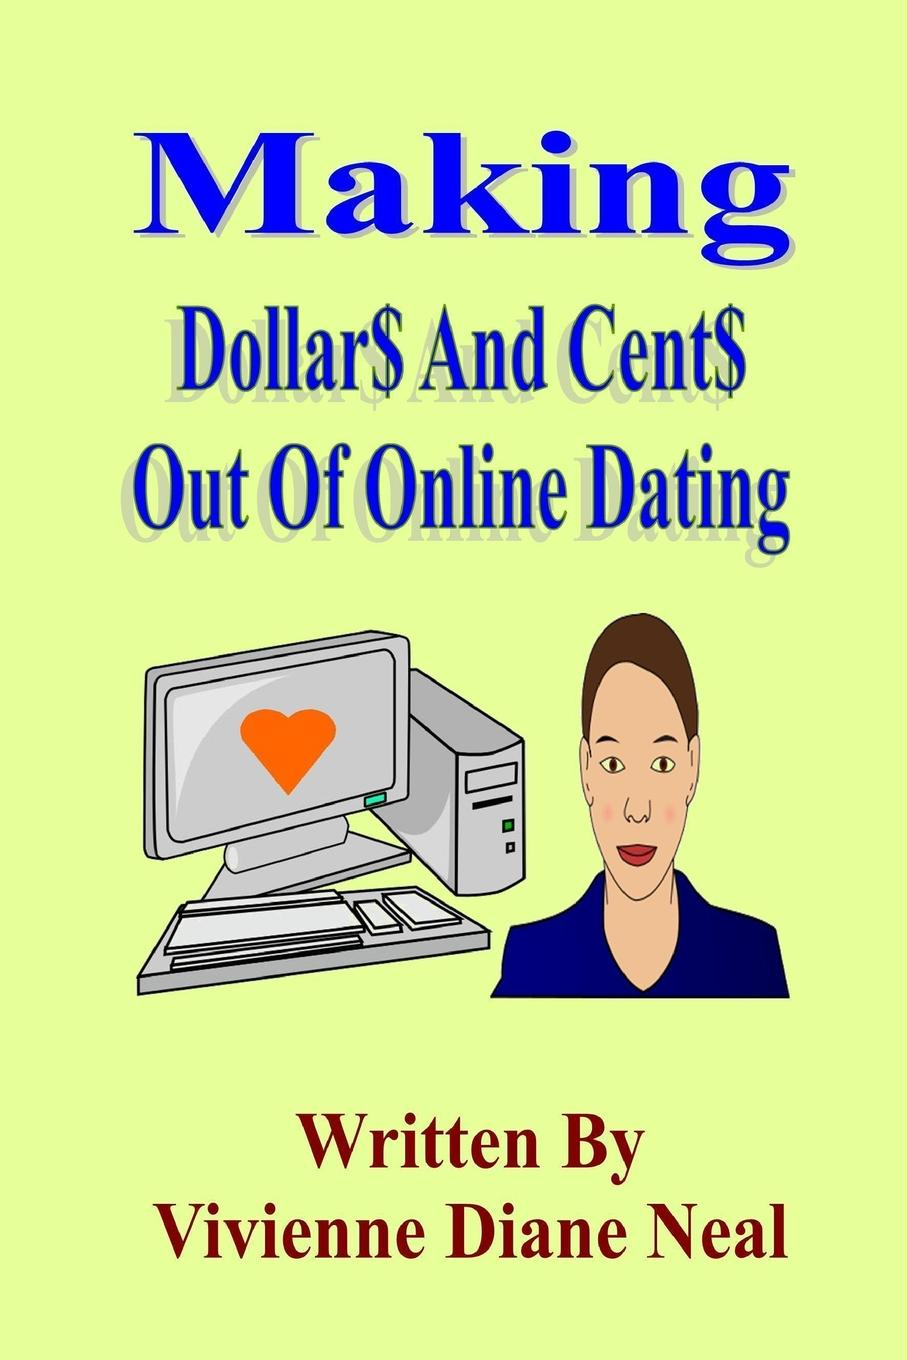 лучшая цена Vivienne Diane Neal Making Dollar. And Cent. Out Of Online Dating